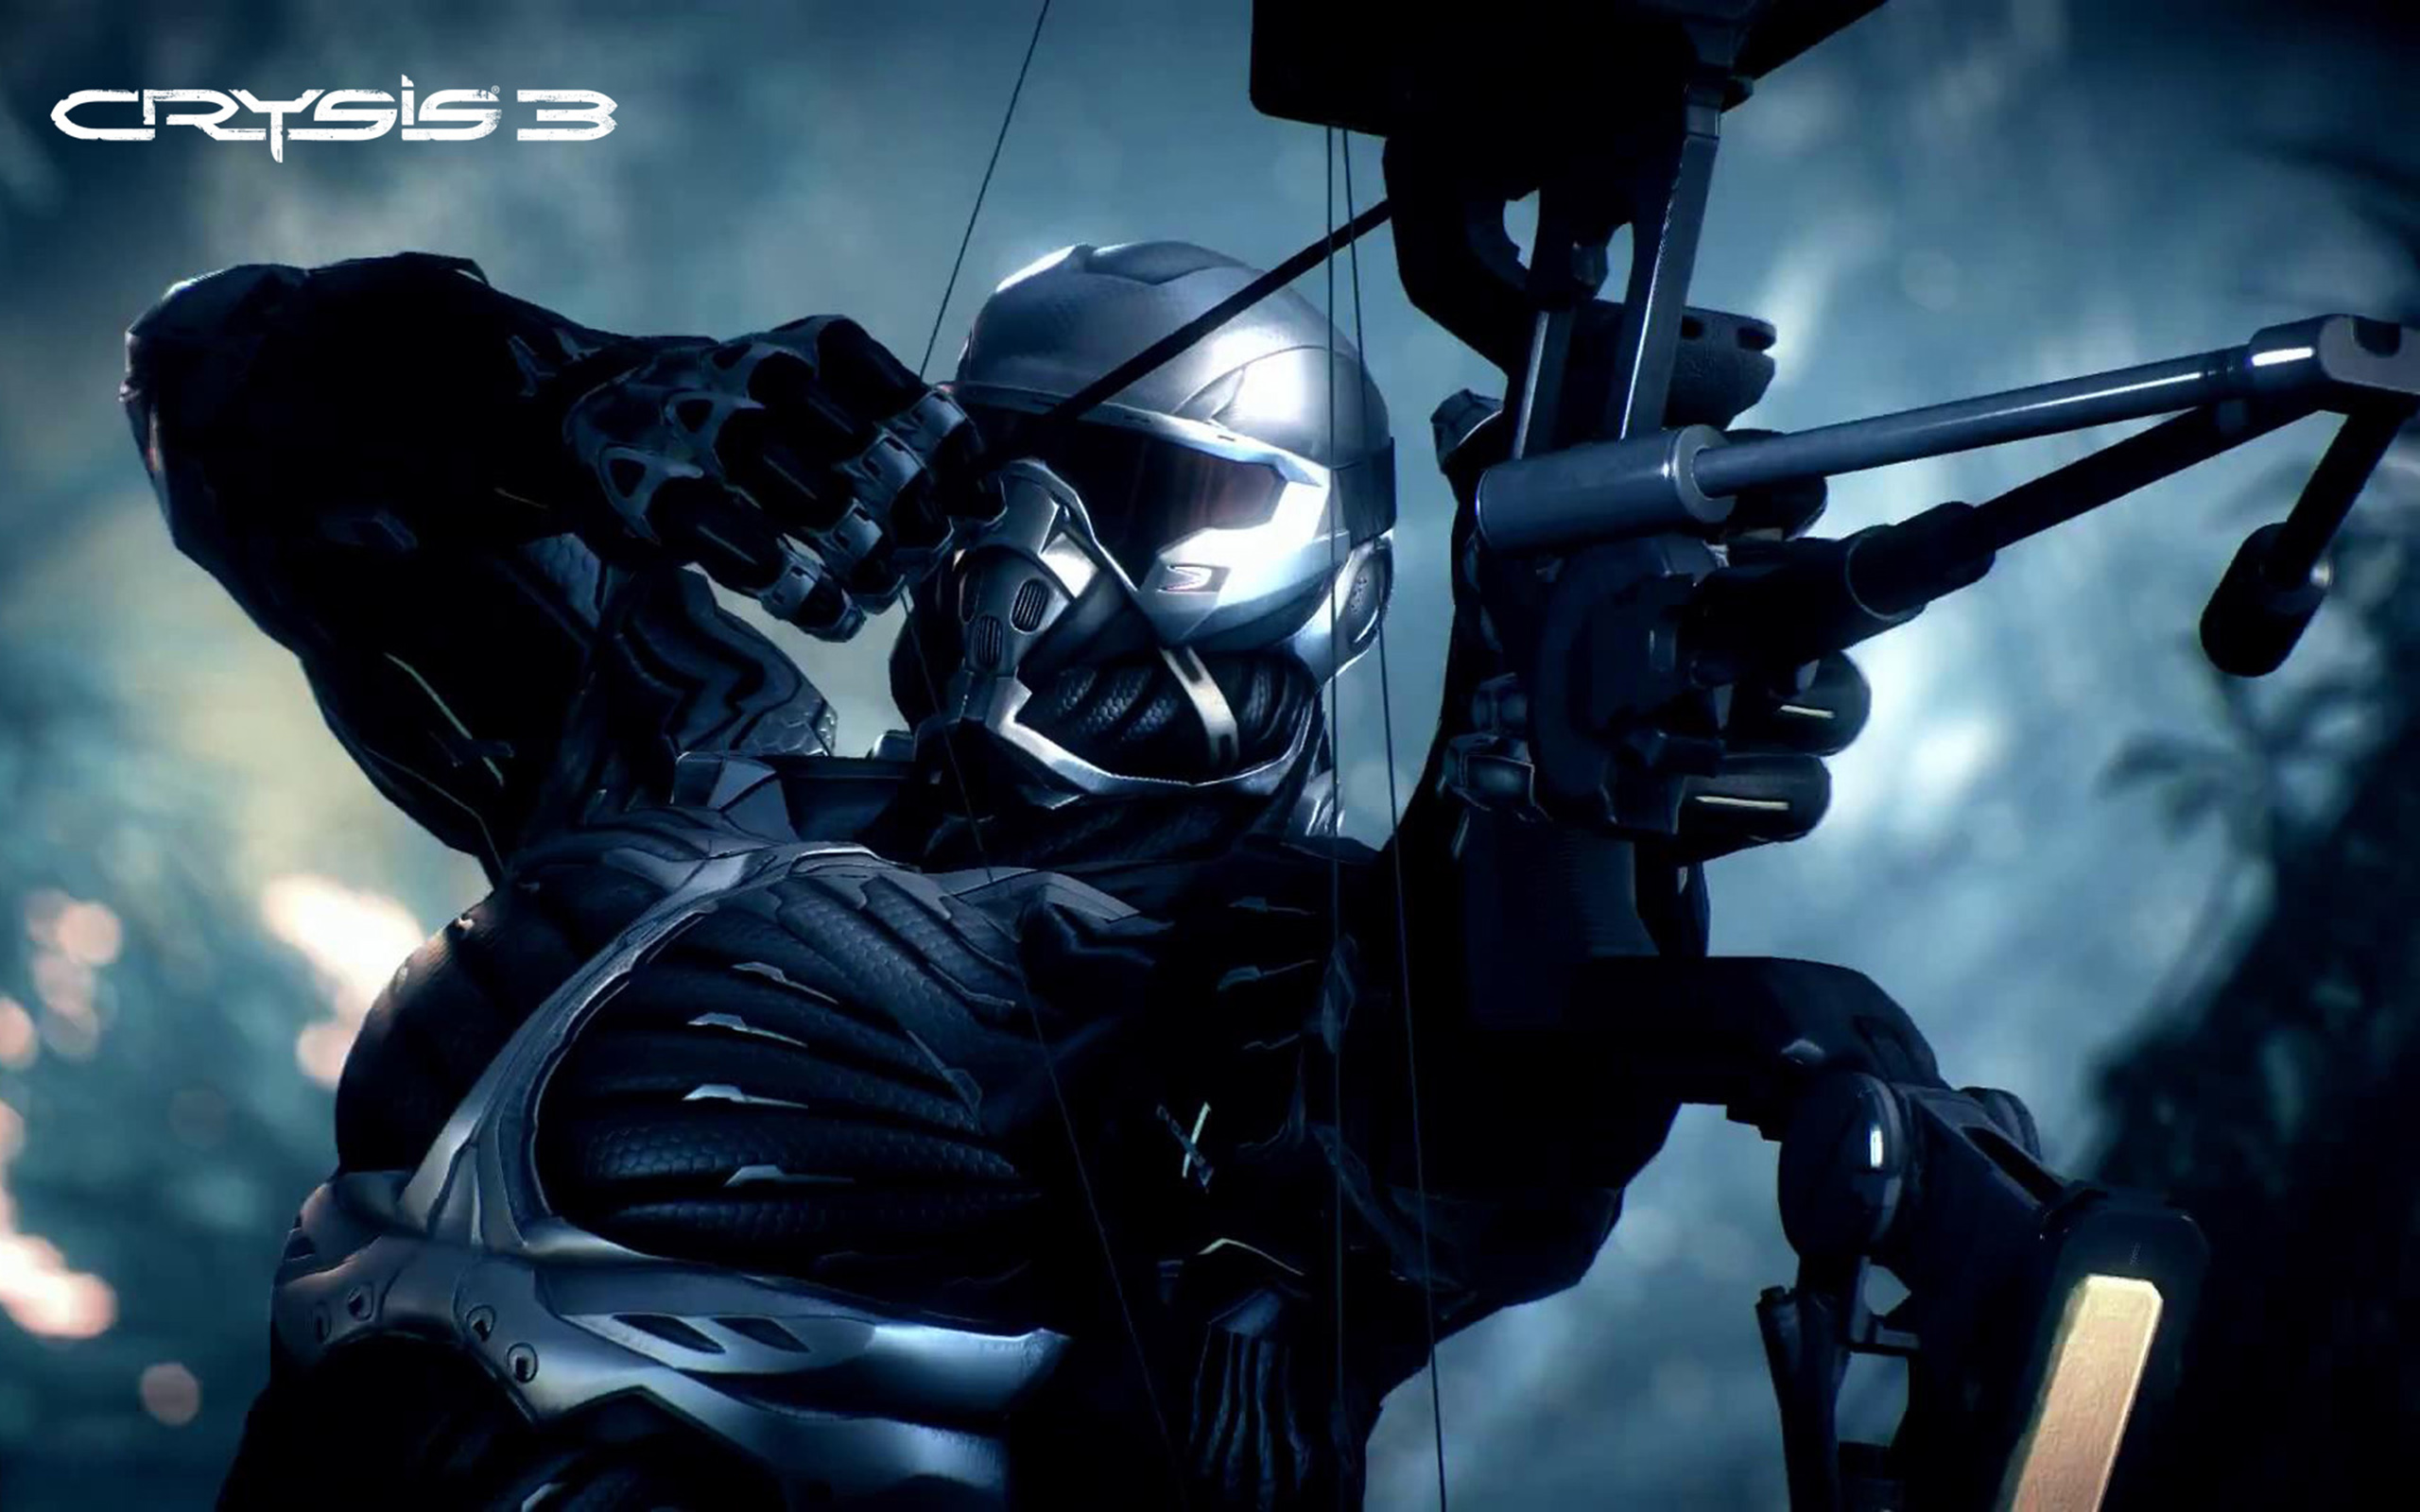 Crysis 3 Wallpaper Backgrounds